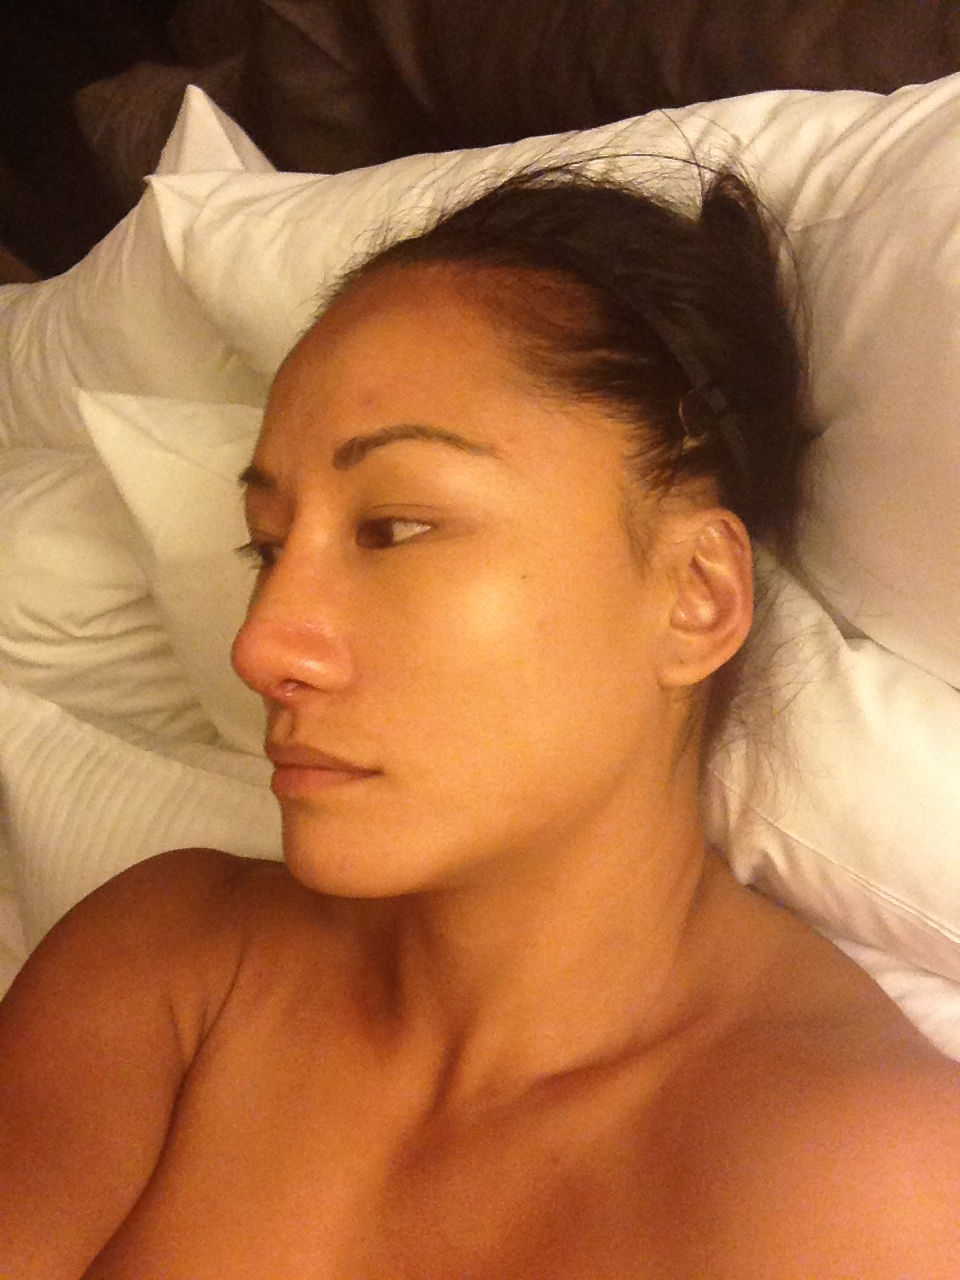 WWE Diva Gail Kim Nude iCloud Photos and Video Leaked The Fappening 2018